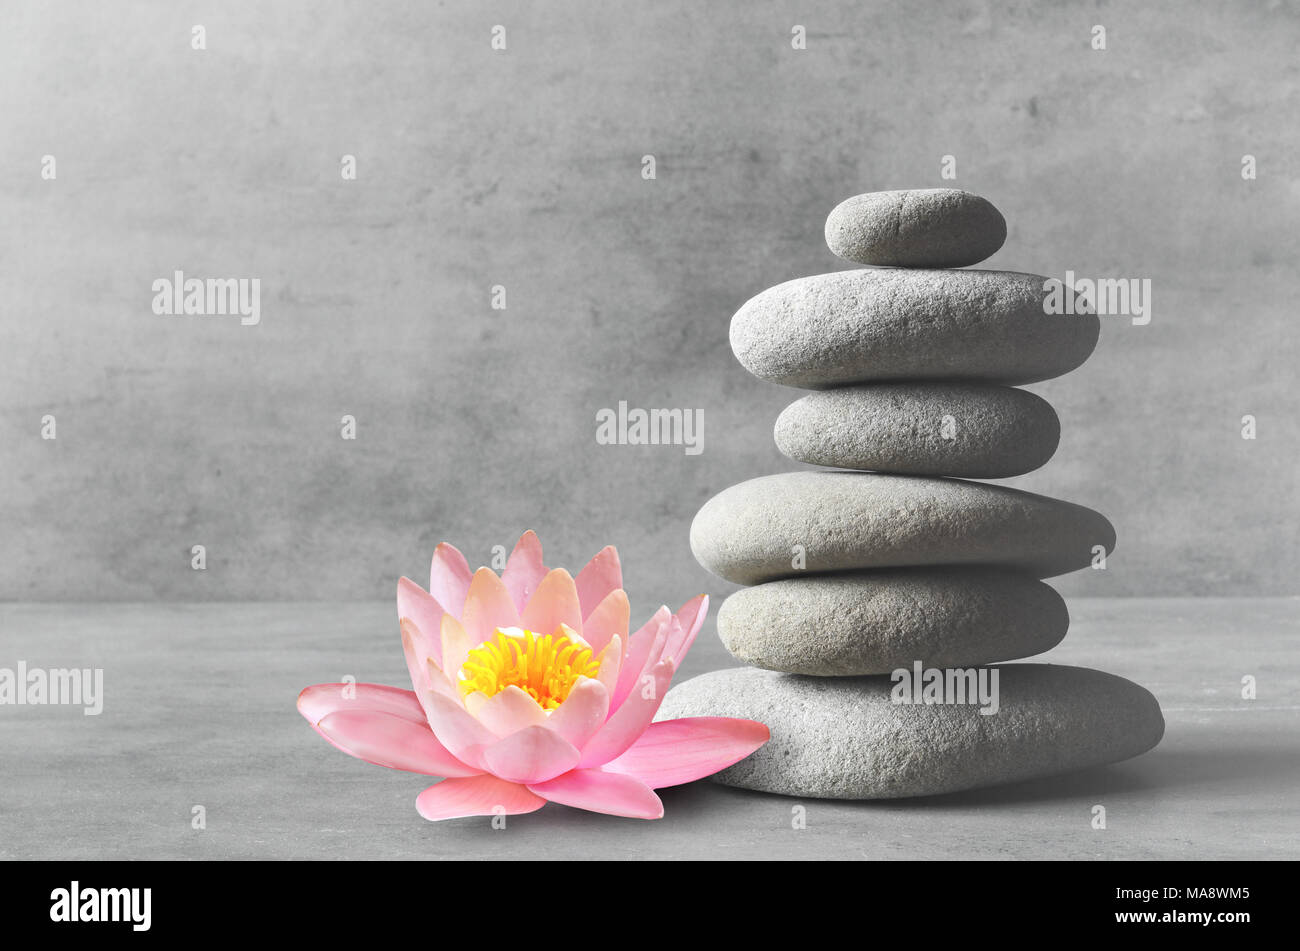 Stones and pink flower lotus balance. Zen and spa concept. - Stock Image